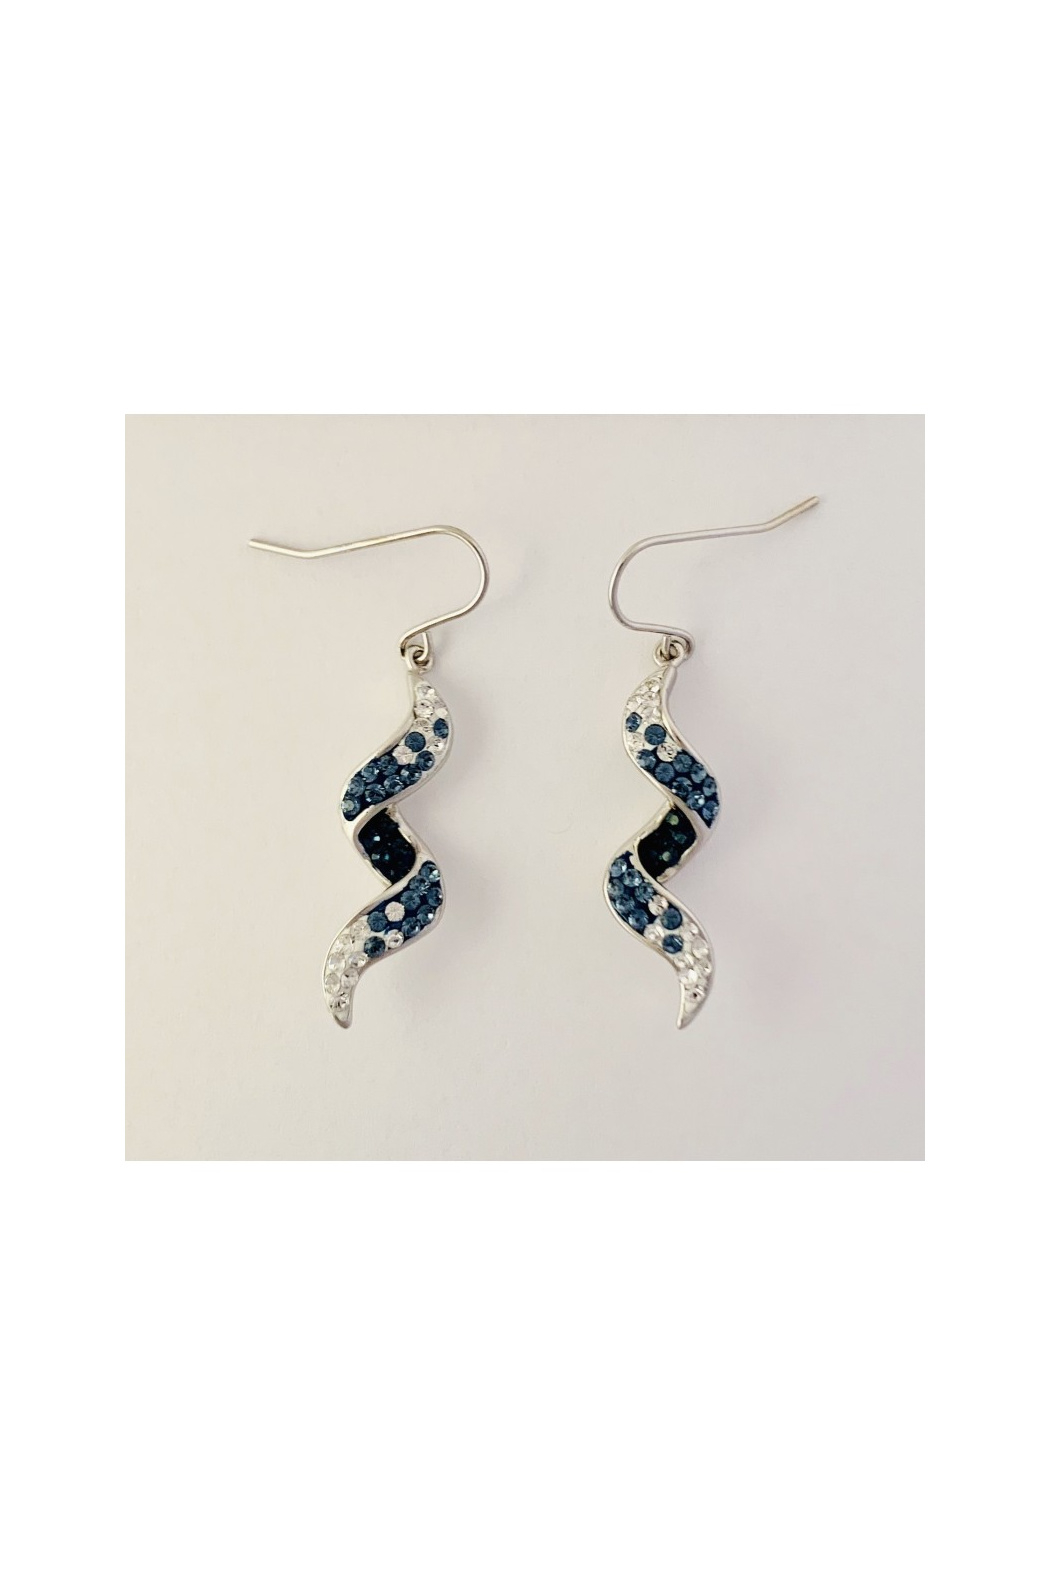 Presco TWIRL WAVE WIRE EARRINGS WITH CRYSTAL ELEMENTS - Main Image